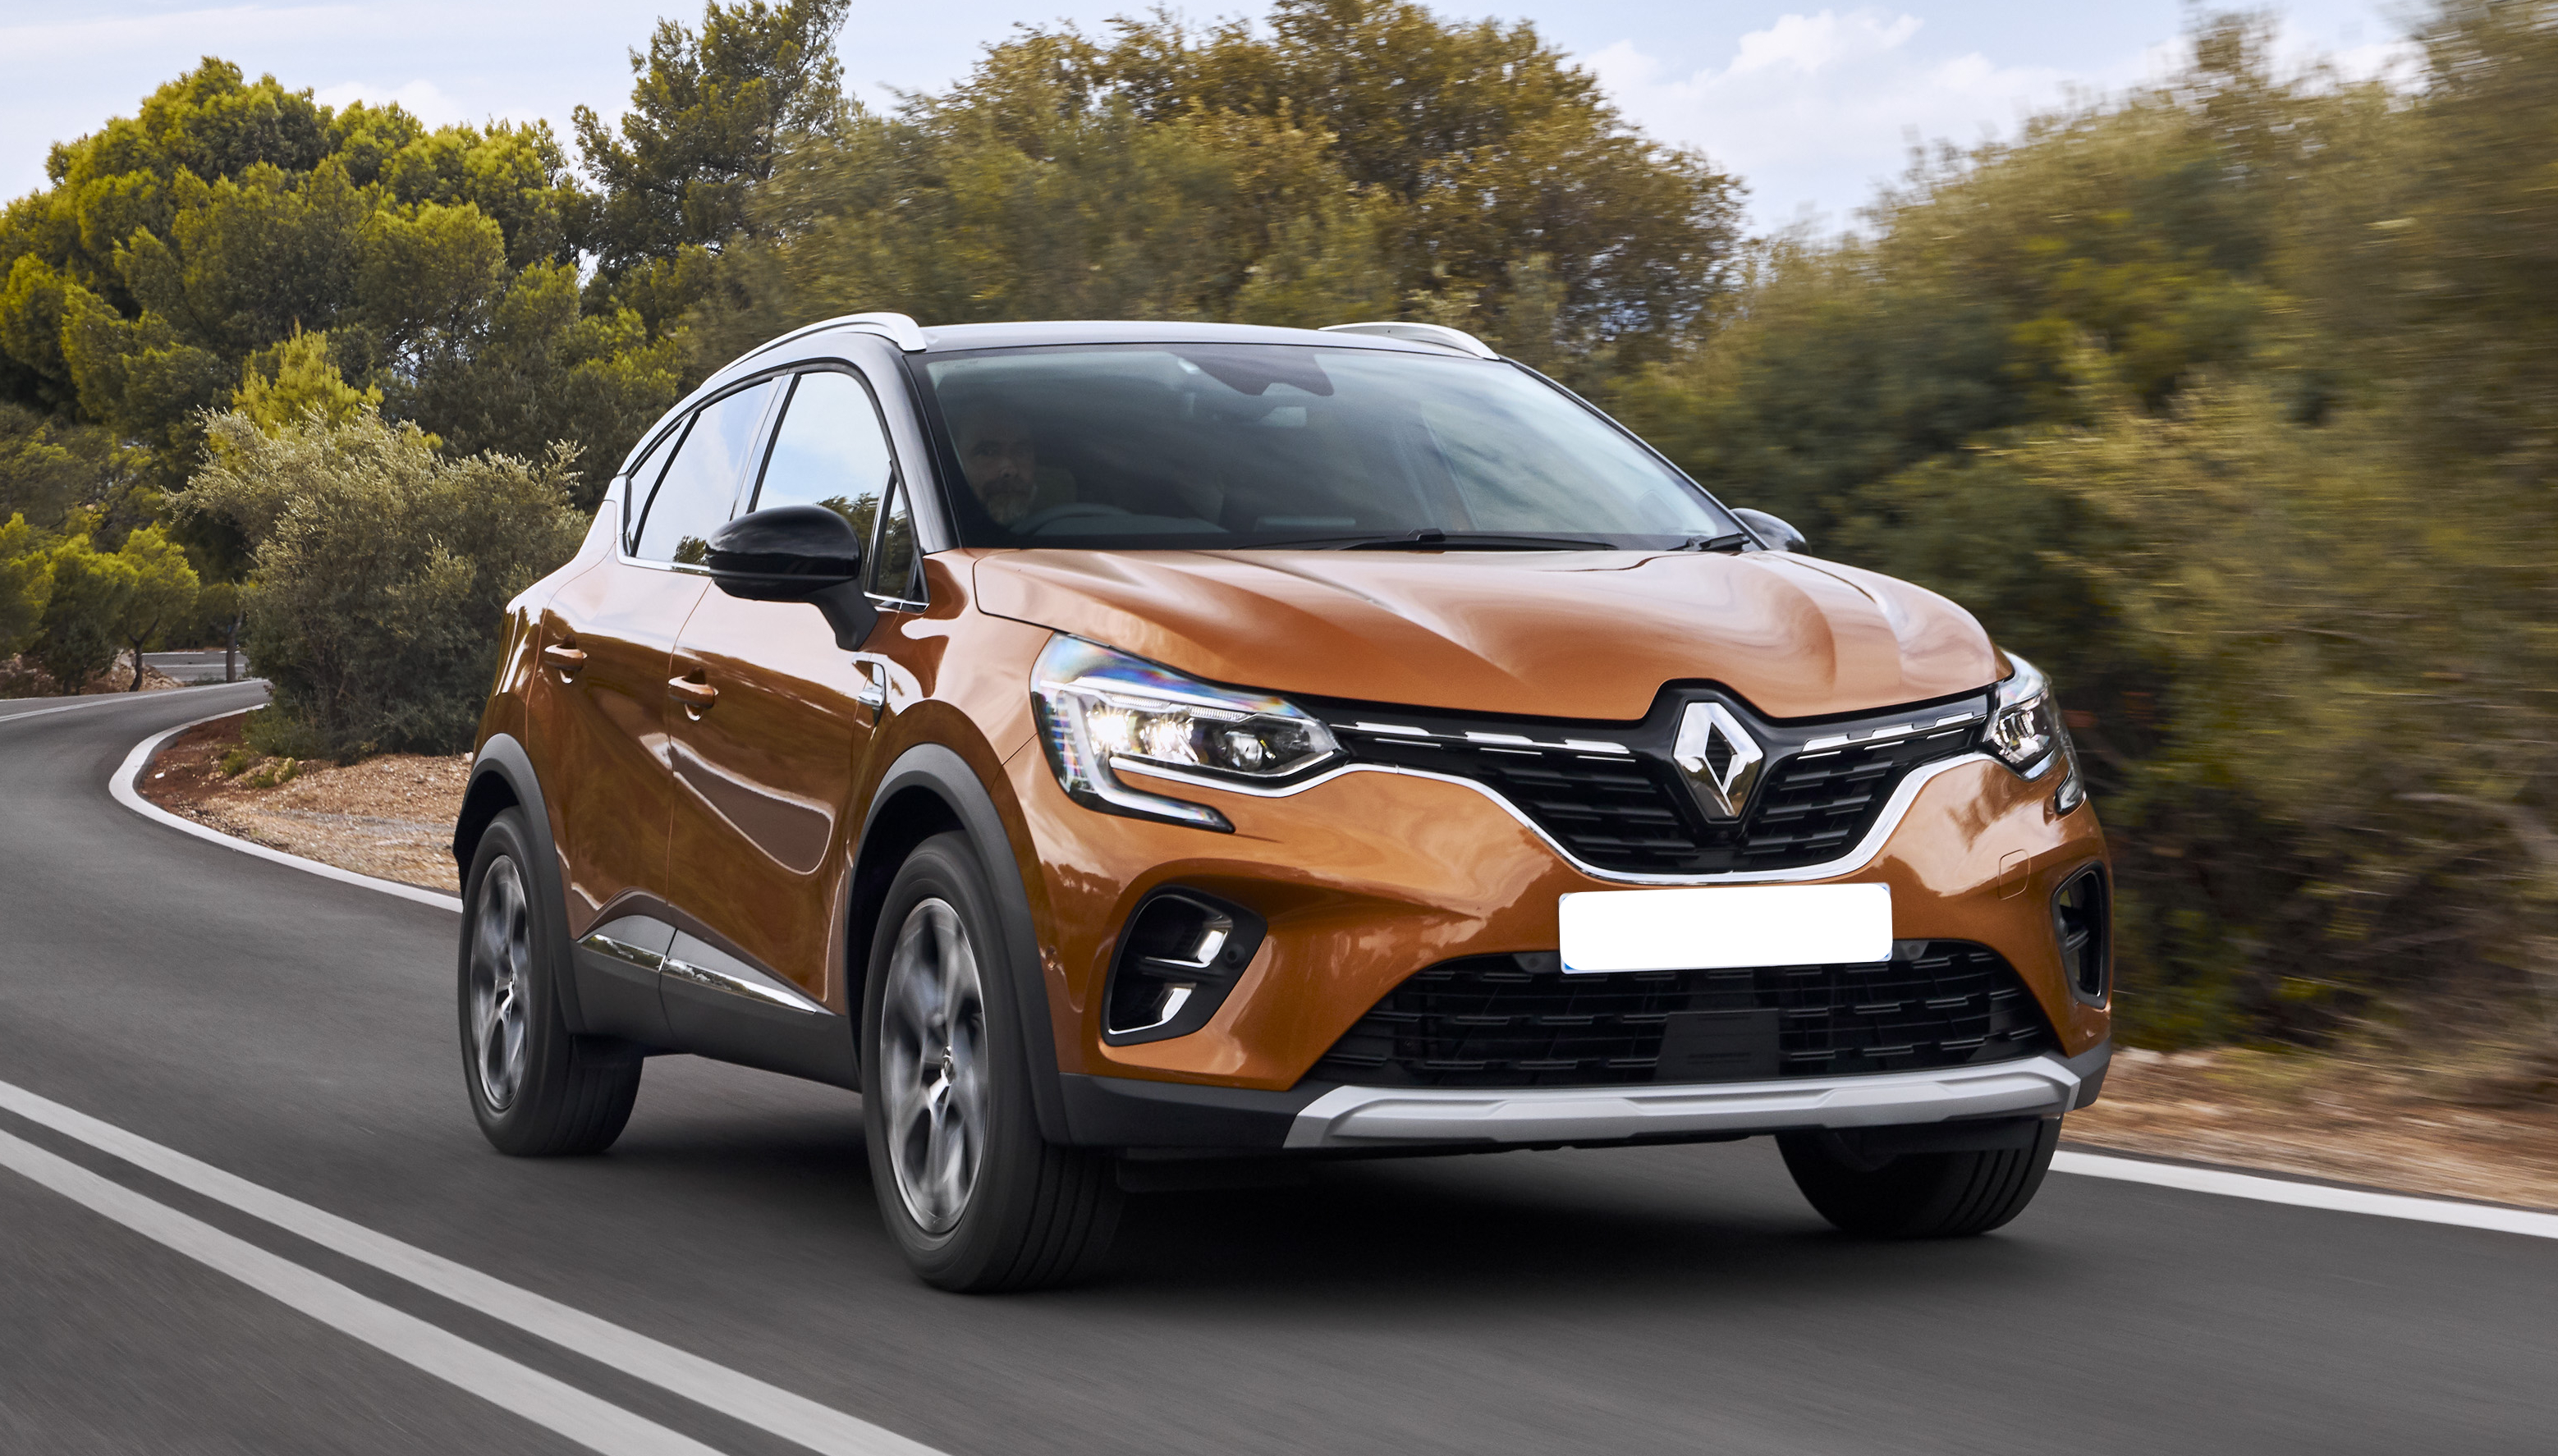 New Renault Captur Review Carwow